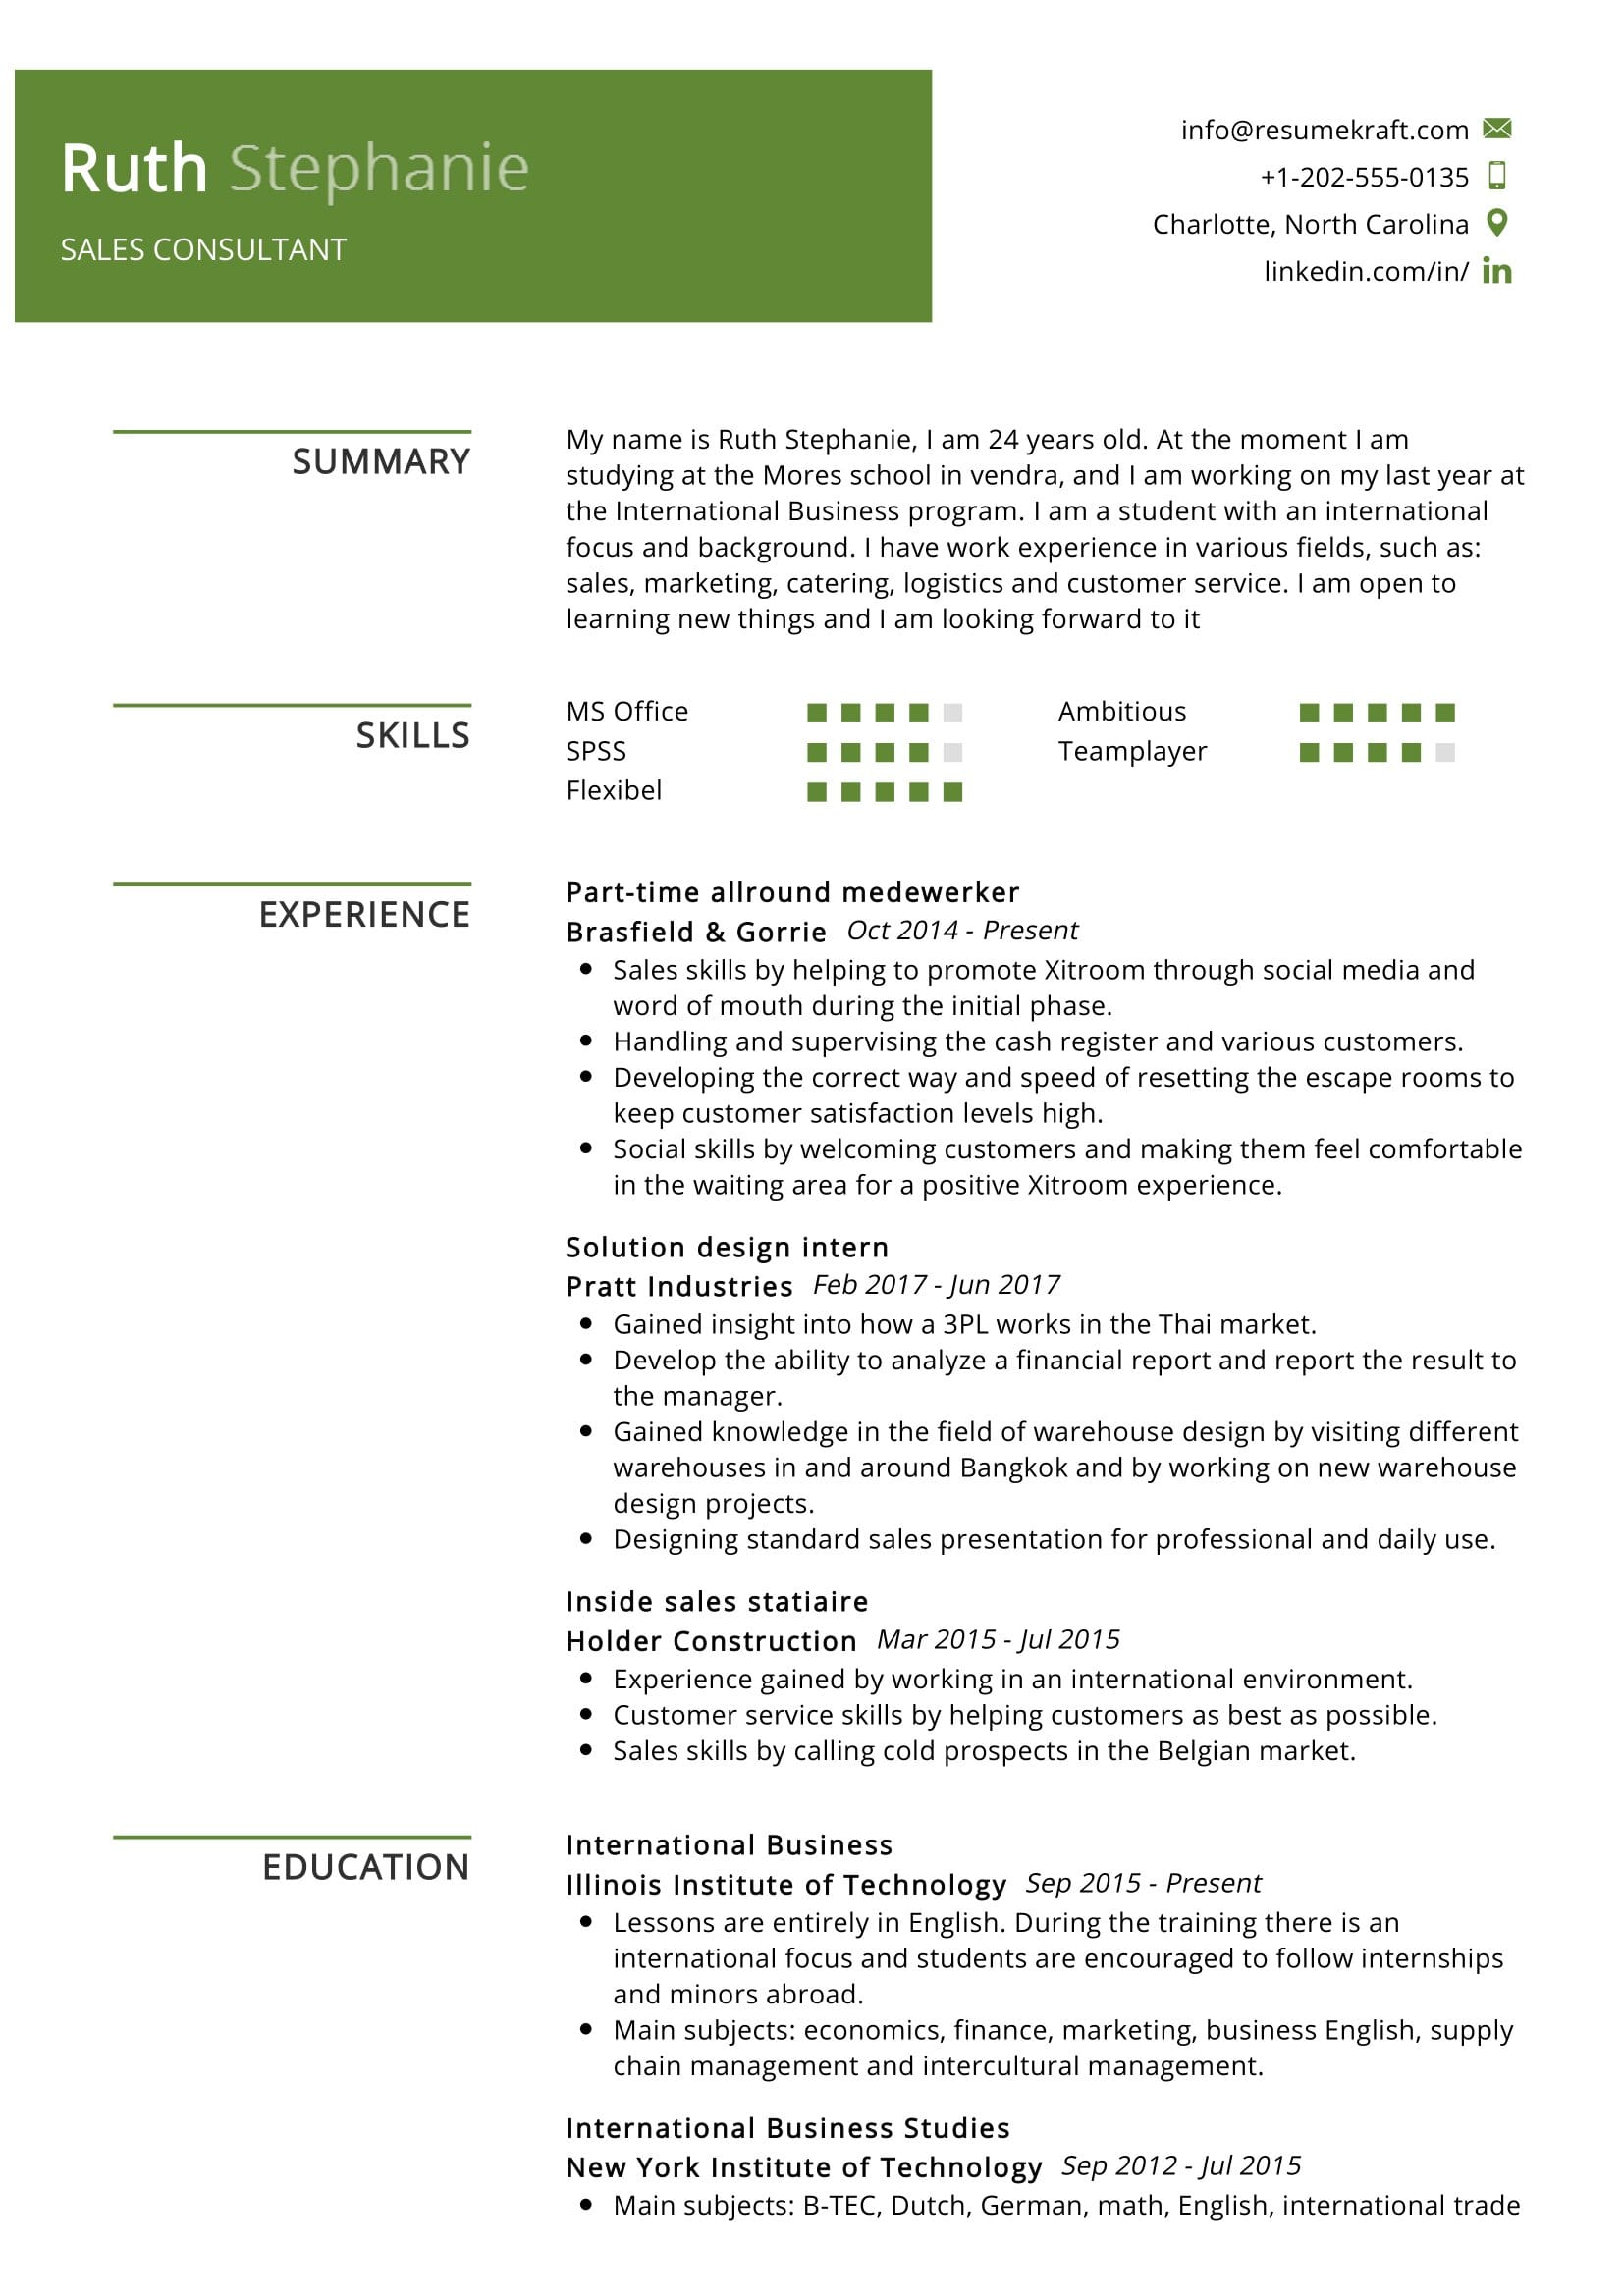 consultant resume sample resumekraft technologies tec transcription summary construction Resume Resume Technologies Resume Tec